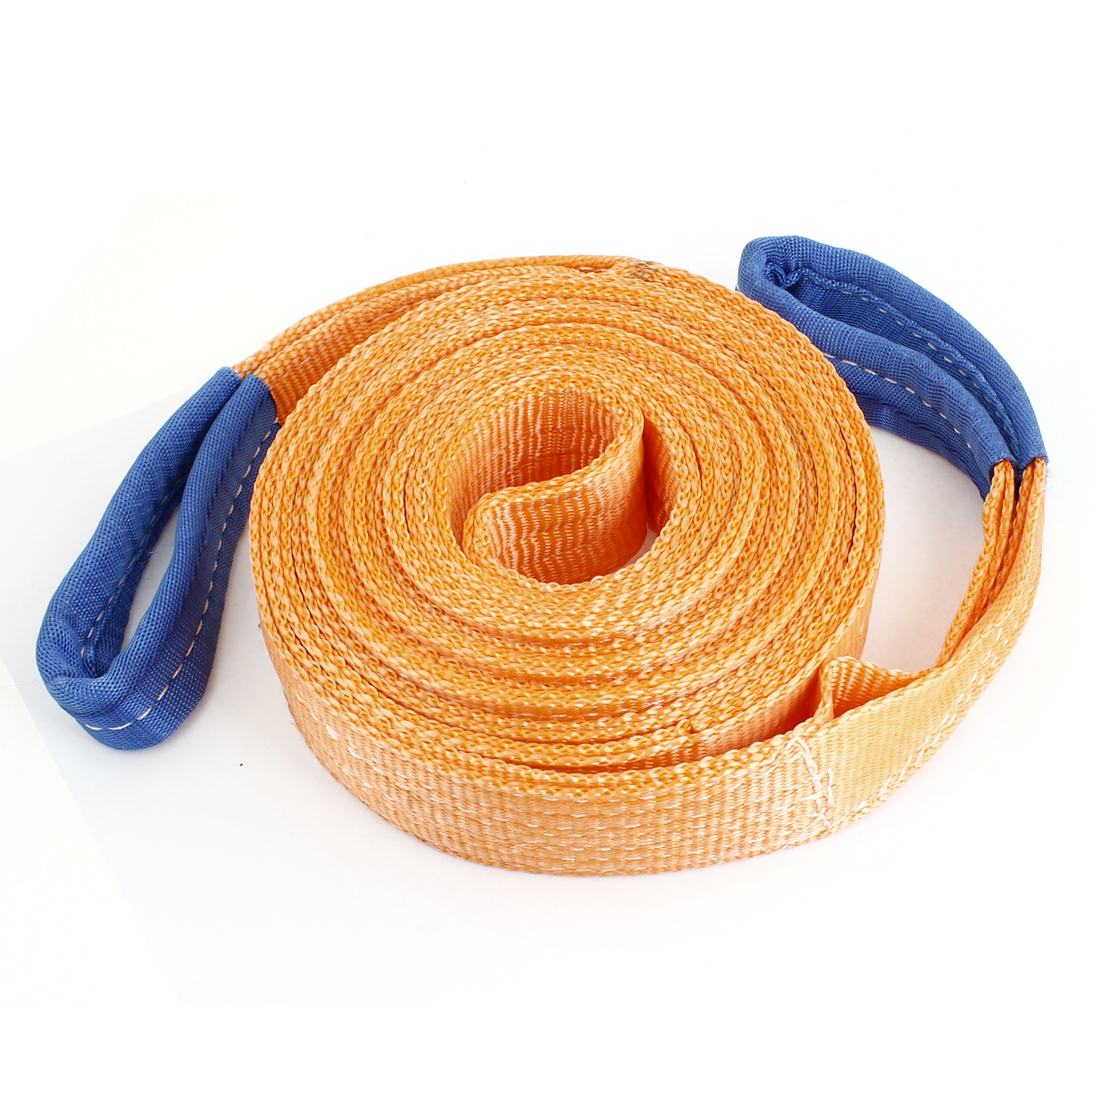 5M x 50mm 2 Tons Nylon Double Layers Emergency Towing Strap Rope Orange